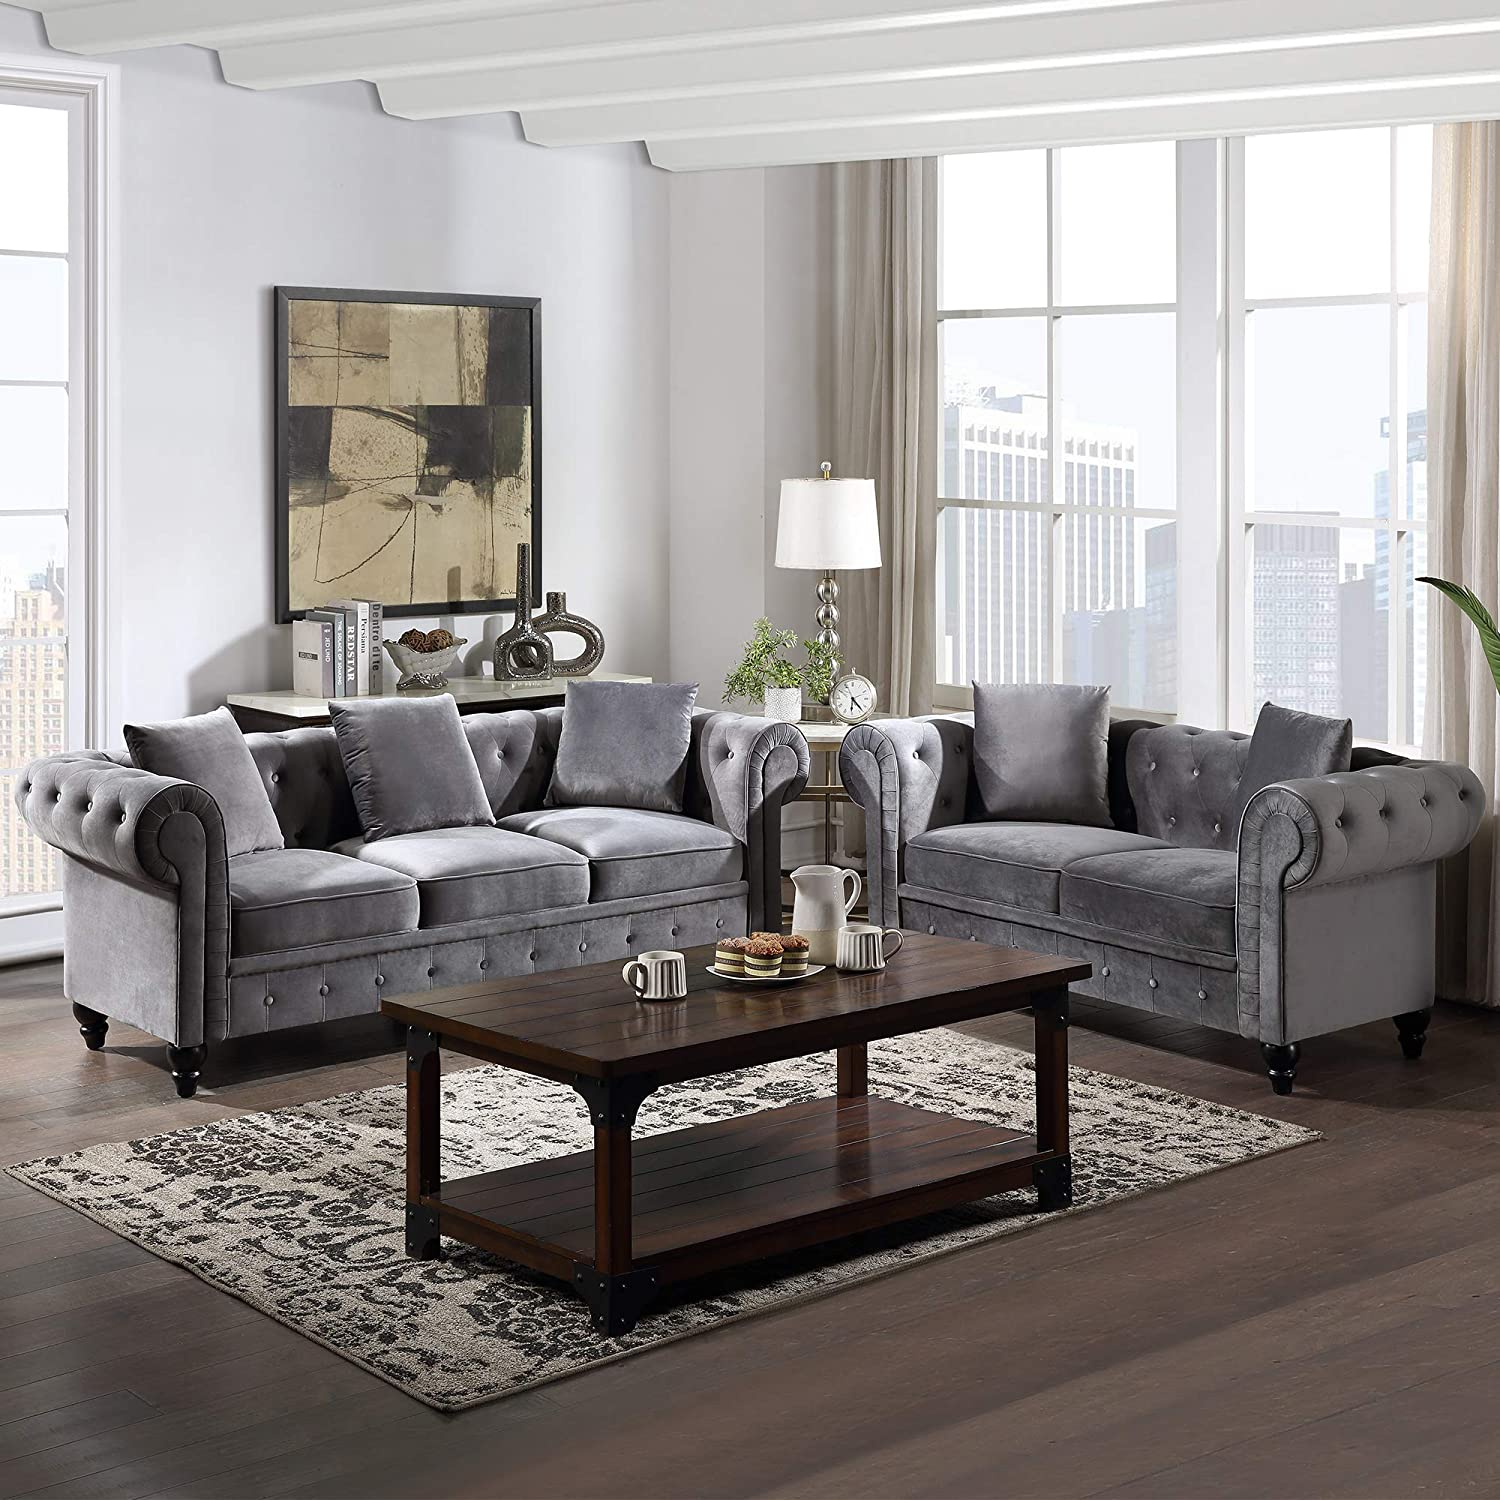 Amazon Com Sofa And Loveseat Set Gray Julyfox Velvet Chesterfield Sofa Set With Rolled Arms Button Tufted Cushions Kitchen Dining